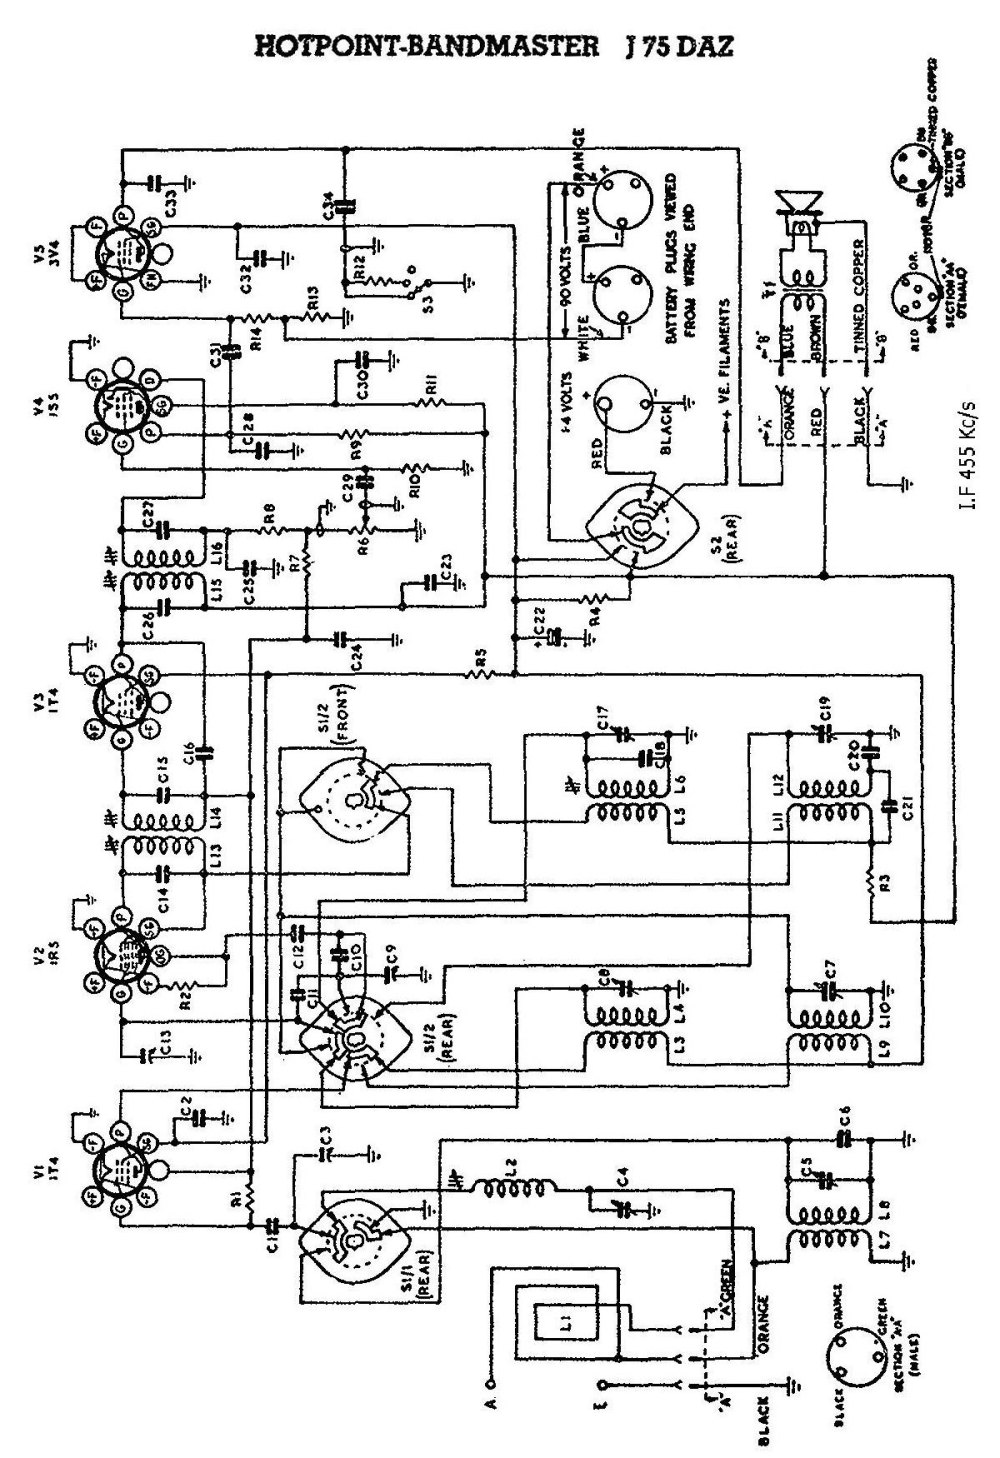 medium resolution of whirlpool dryer wiring diagram get free image about hotpoint dryer schematic diagram hotpoint dryer schematic diagram